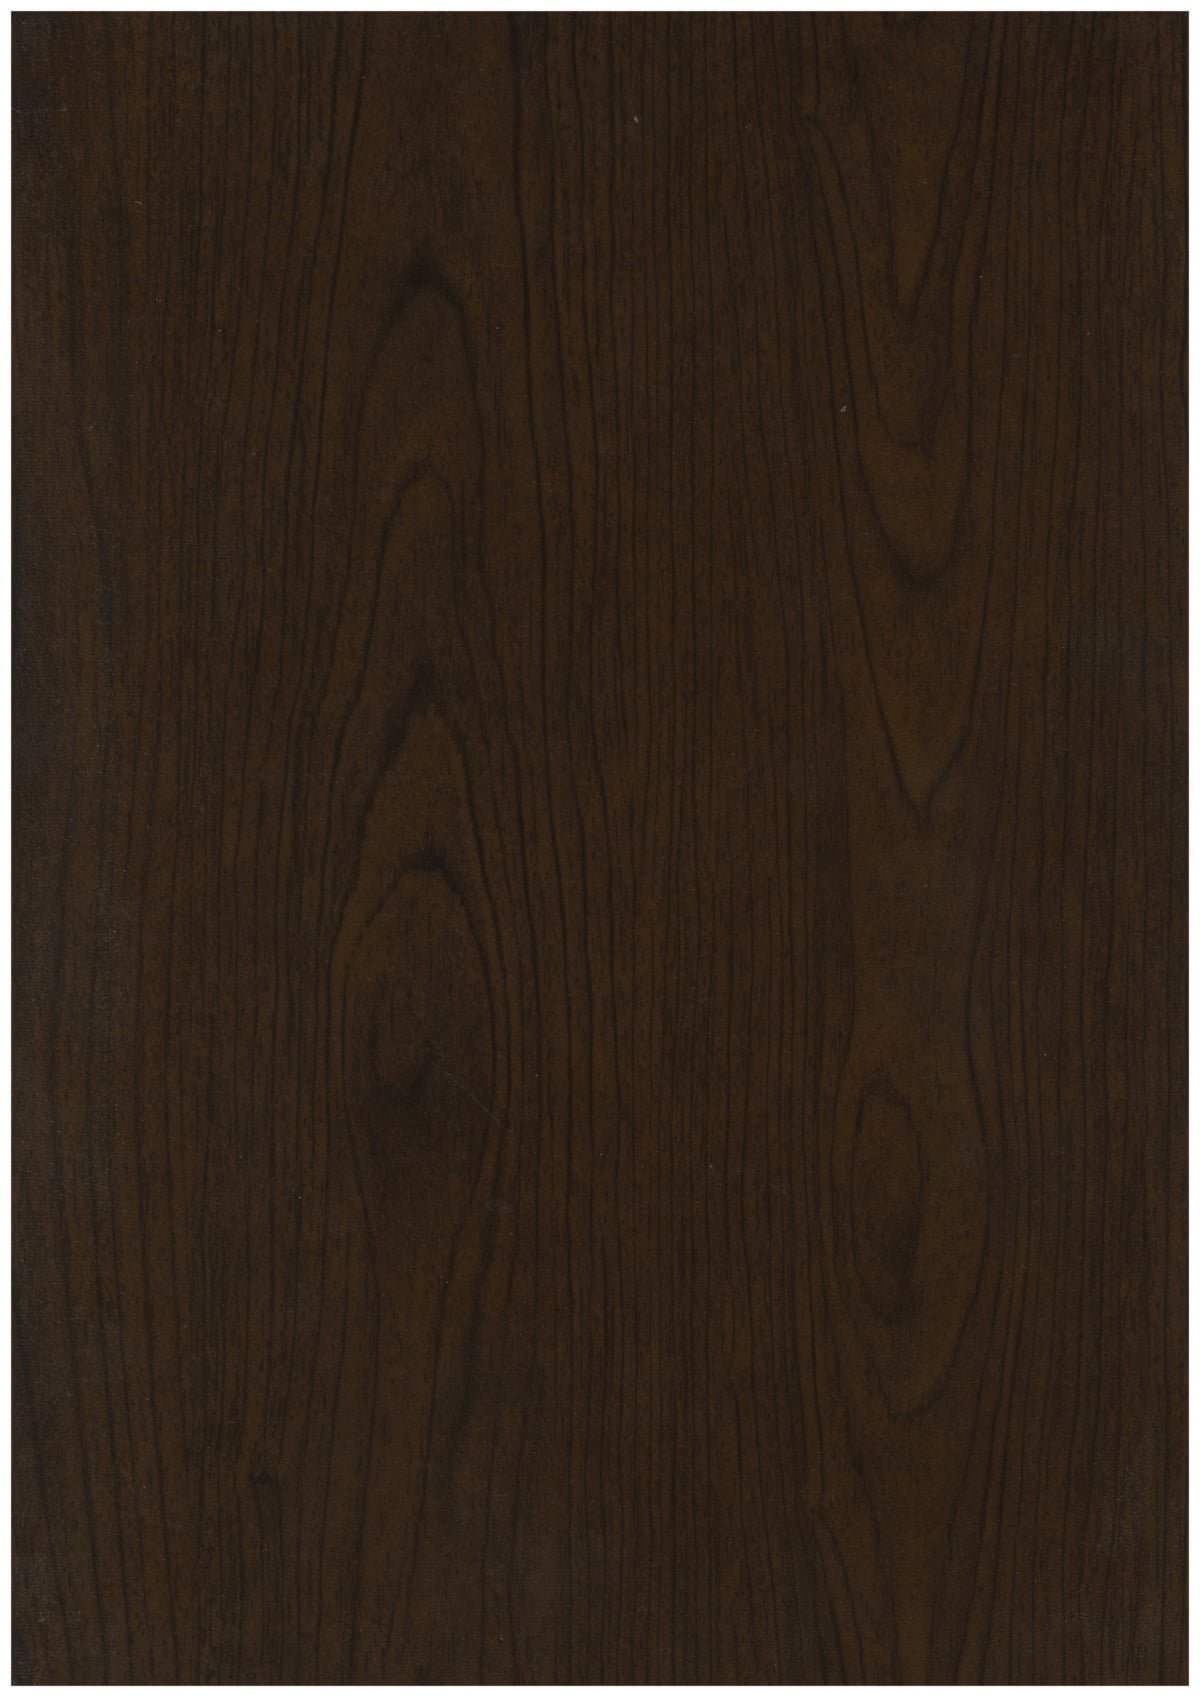 , Woodgrain Colors, Knotwood Architectural Products, Knotwood Architectural Products